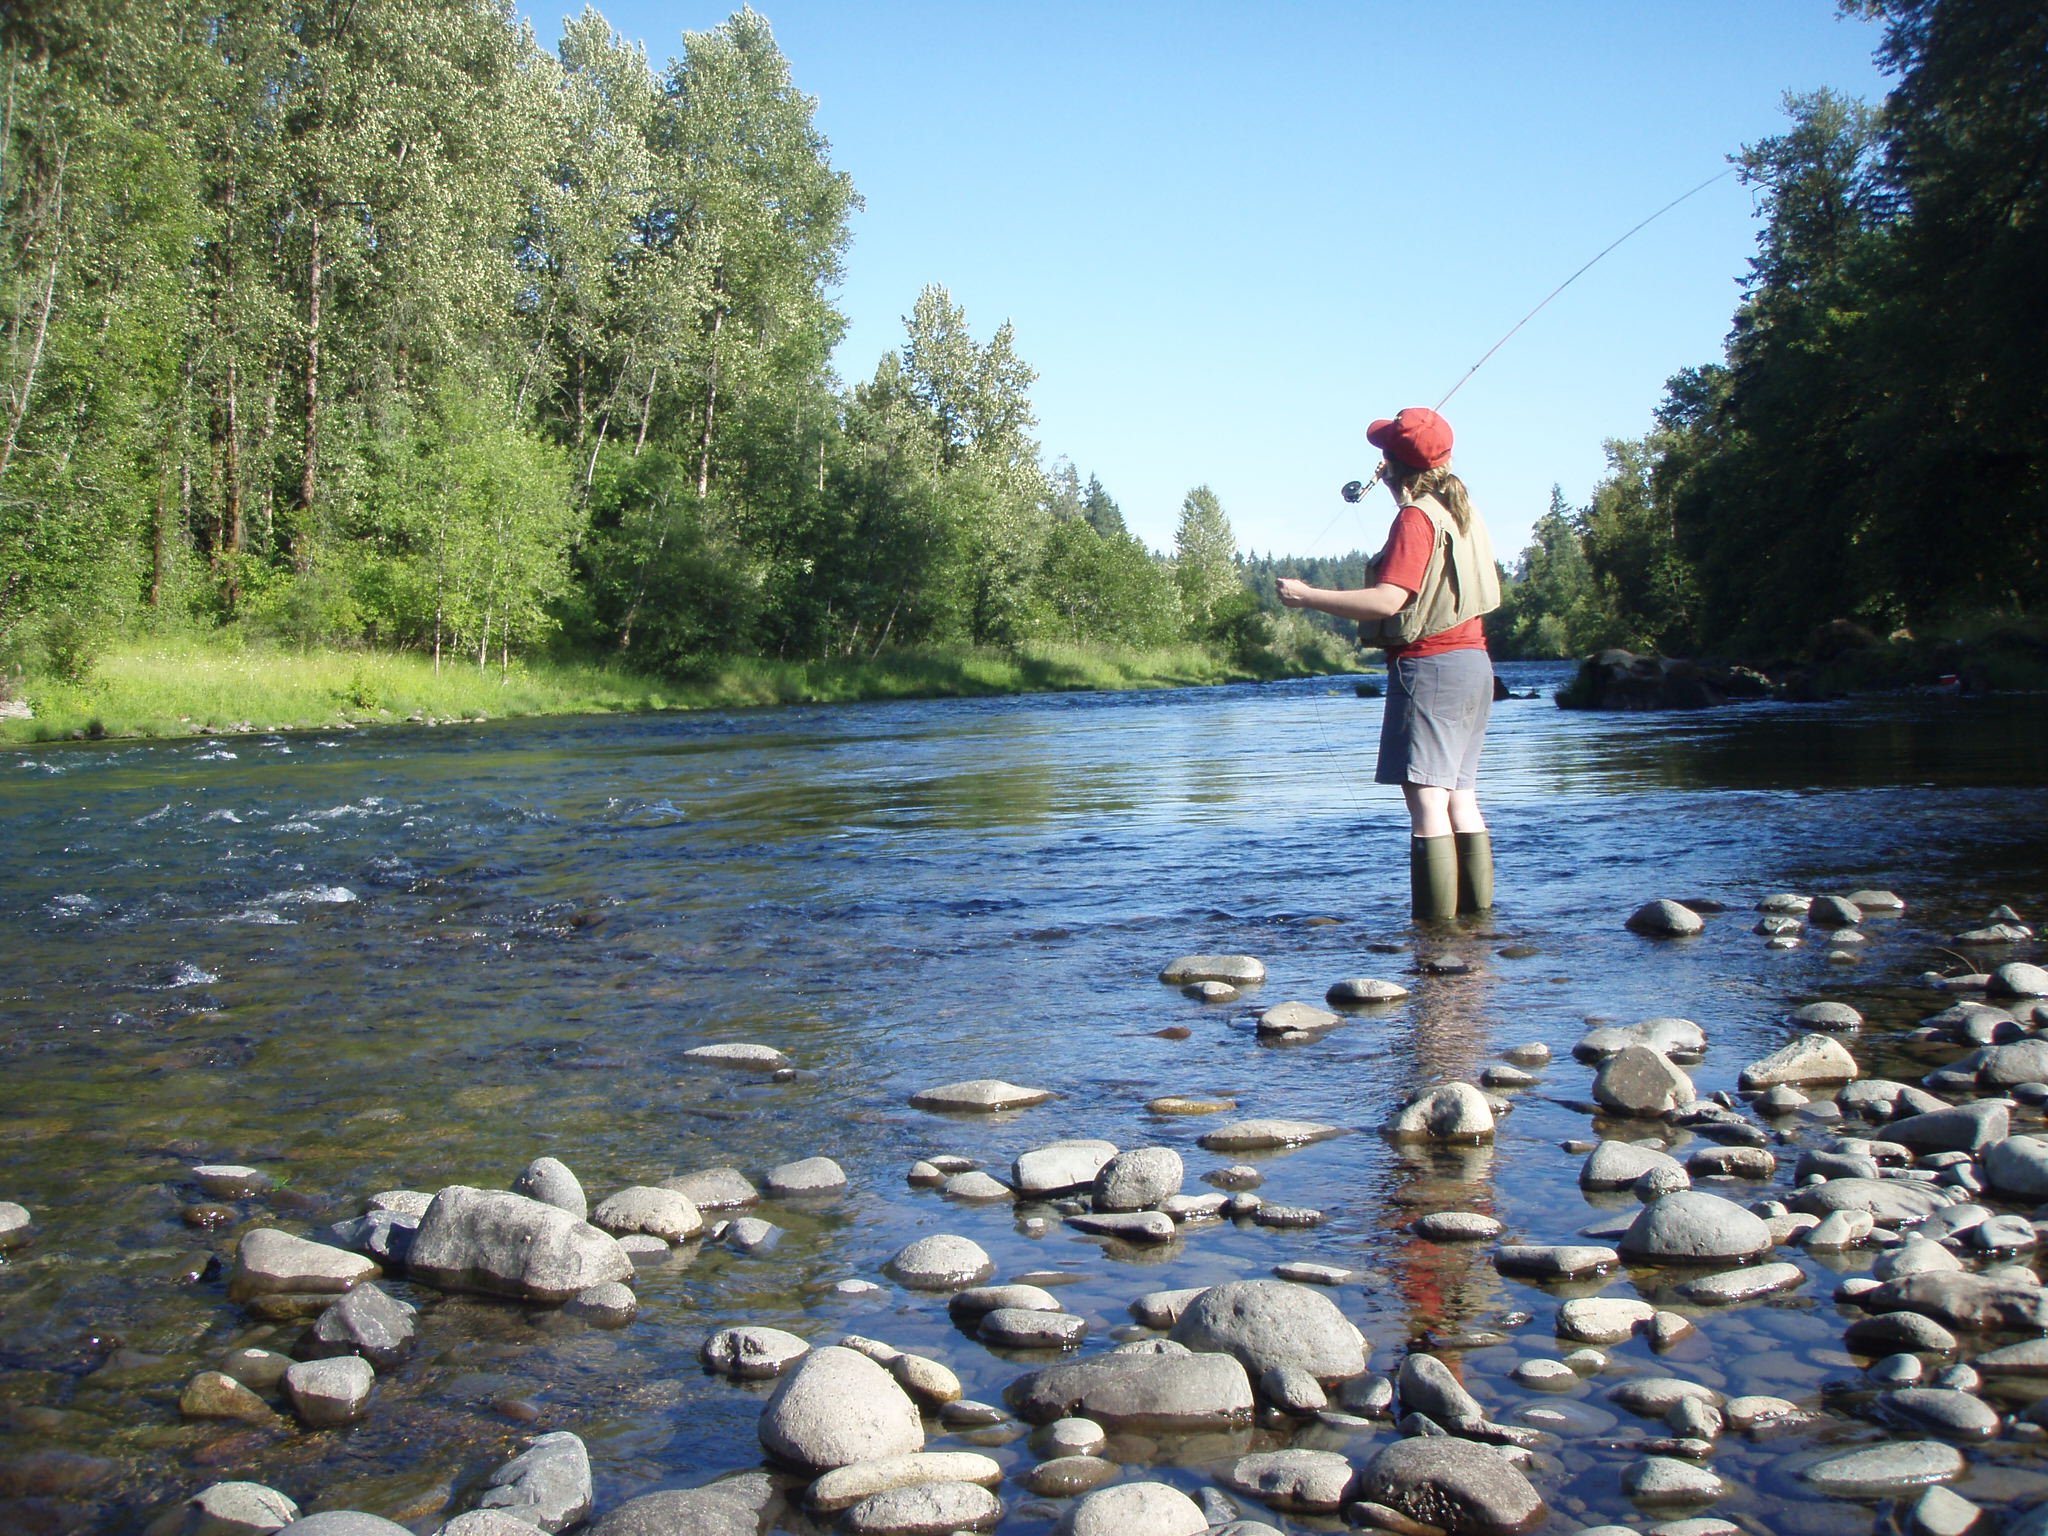 Ribolov na fotkama - Page 5 Fly_fishing_on_the_South_Santiam